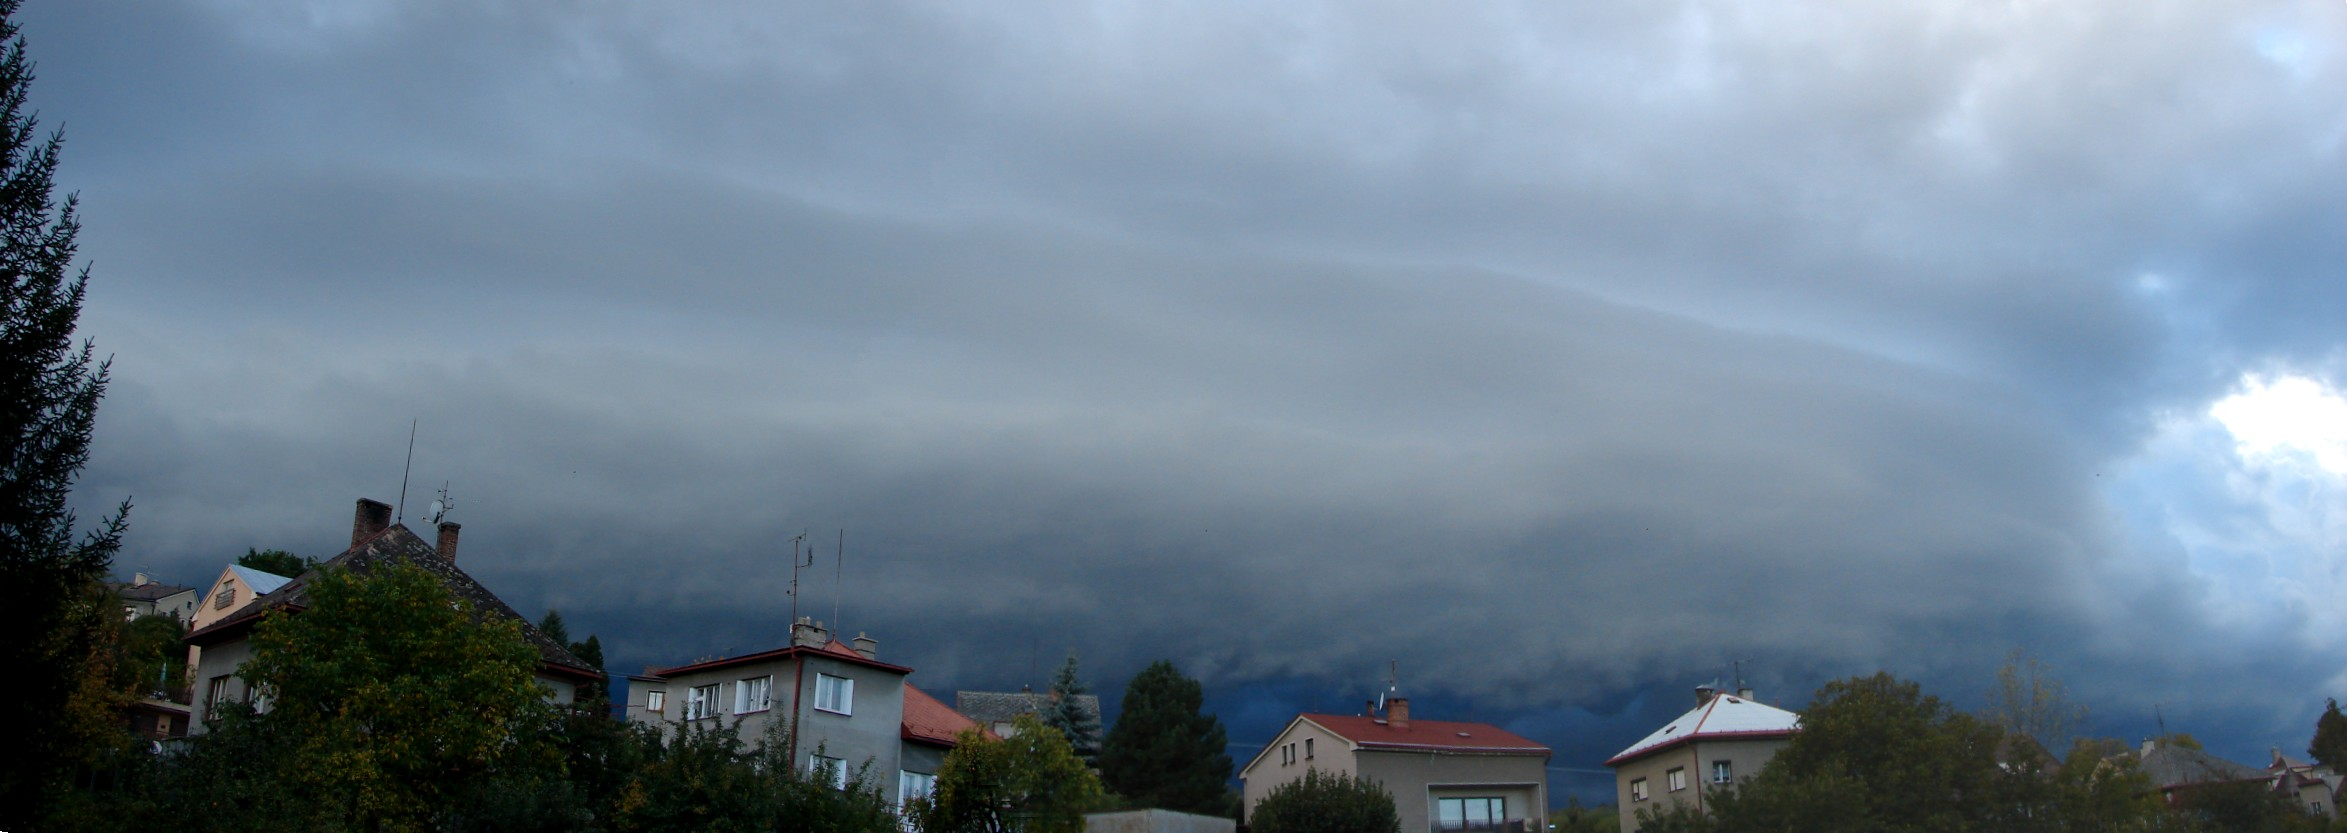 shelf-cloud---panorama.jpg